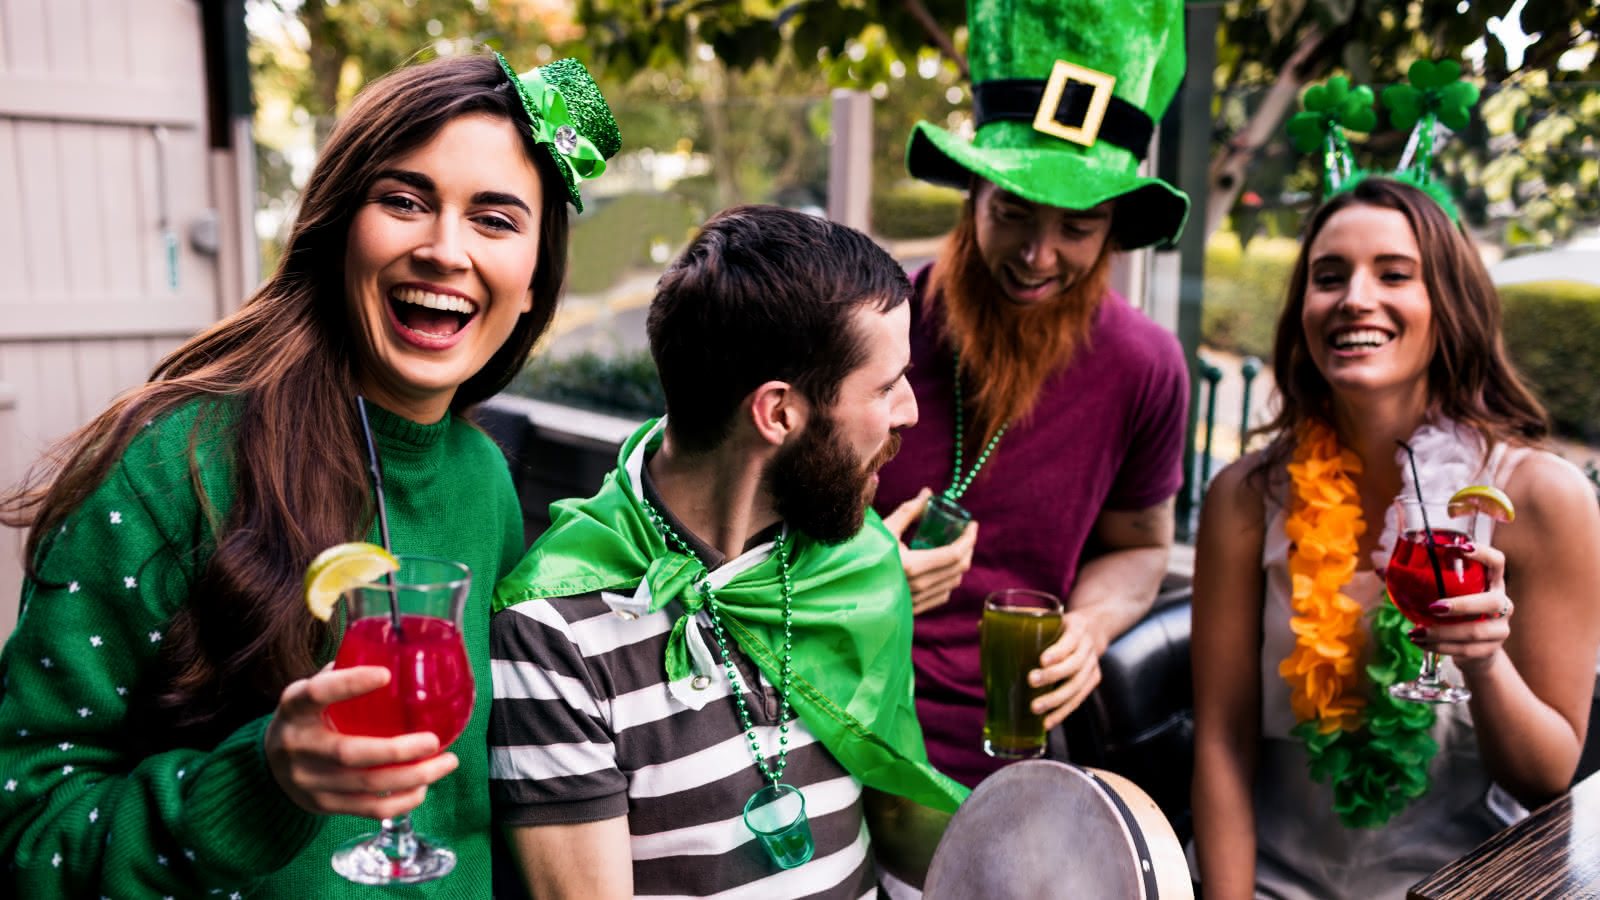 st patrick's day pub crawl